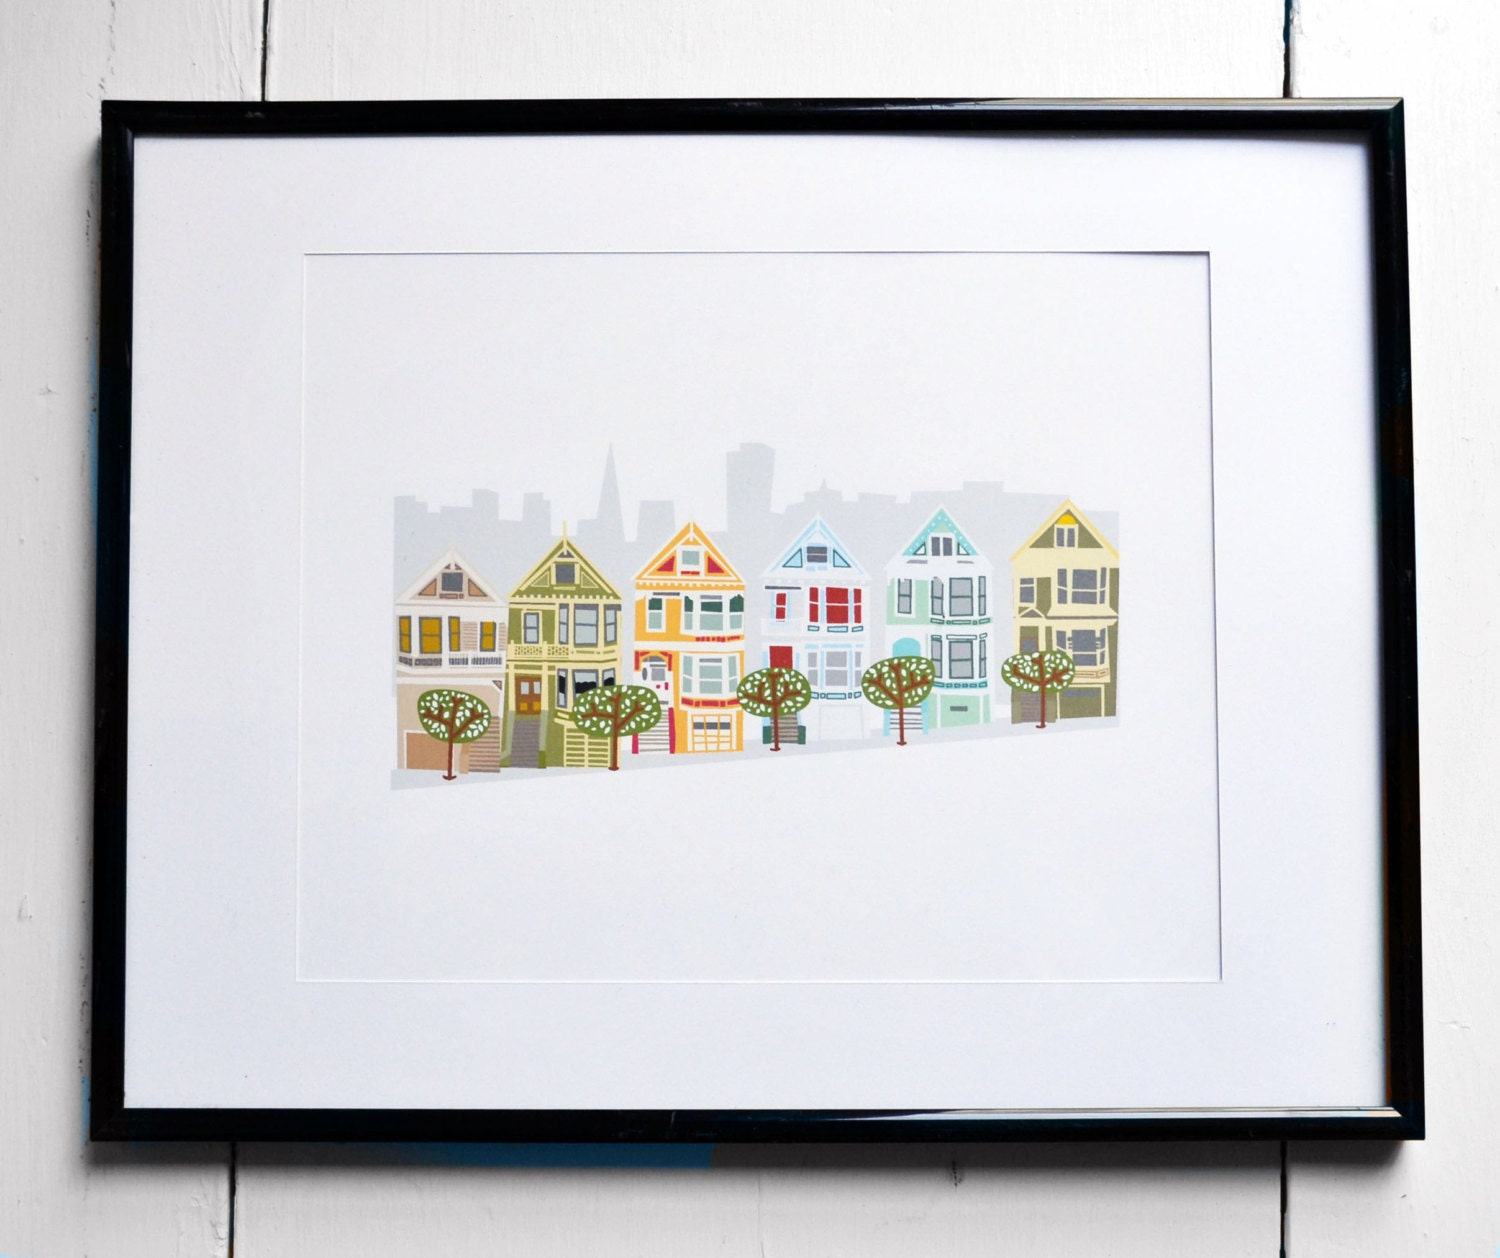 Color art printing anchorage - Art Print Painted Ladies San Francisco California Jpress Designs House Portrait Original Artwork Whimsical Illustration Modern